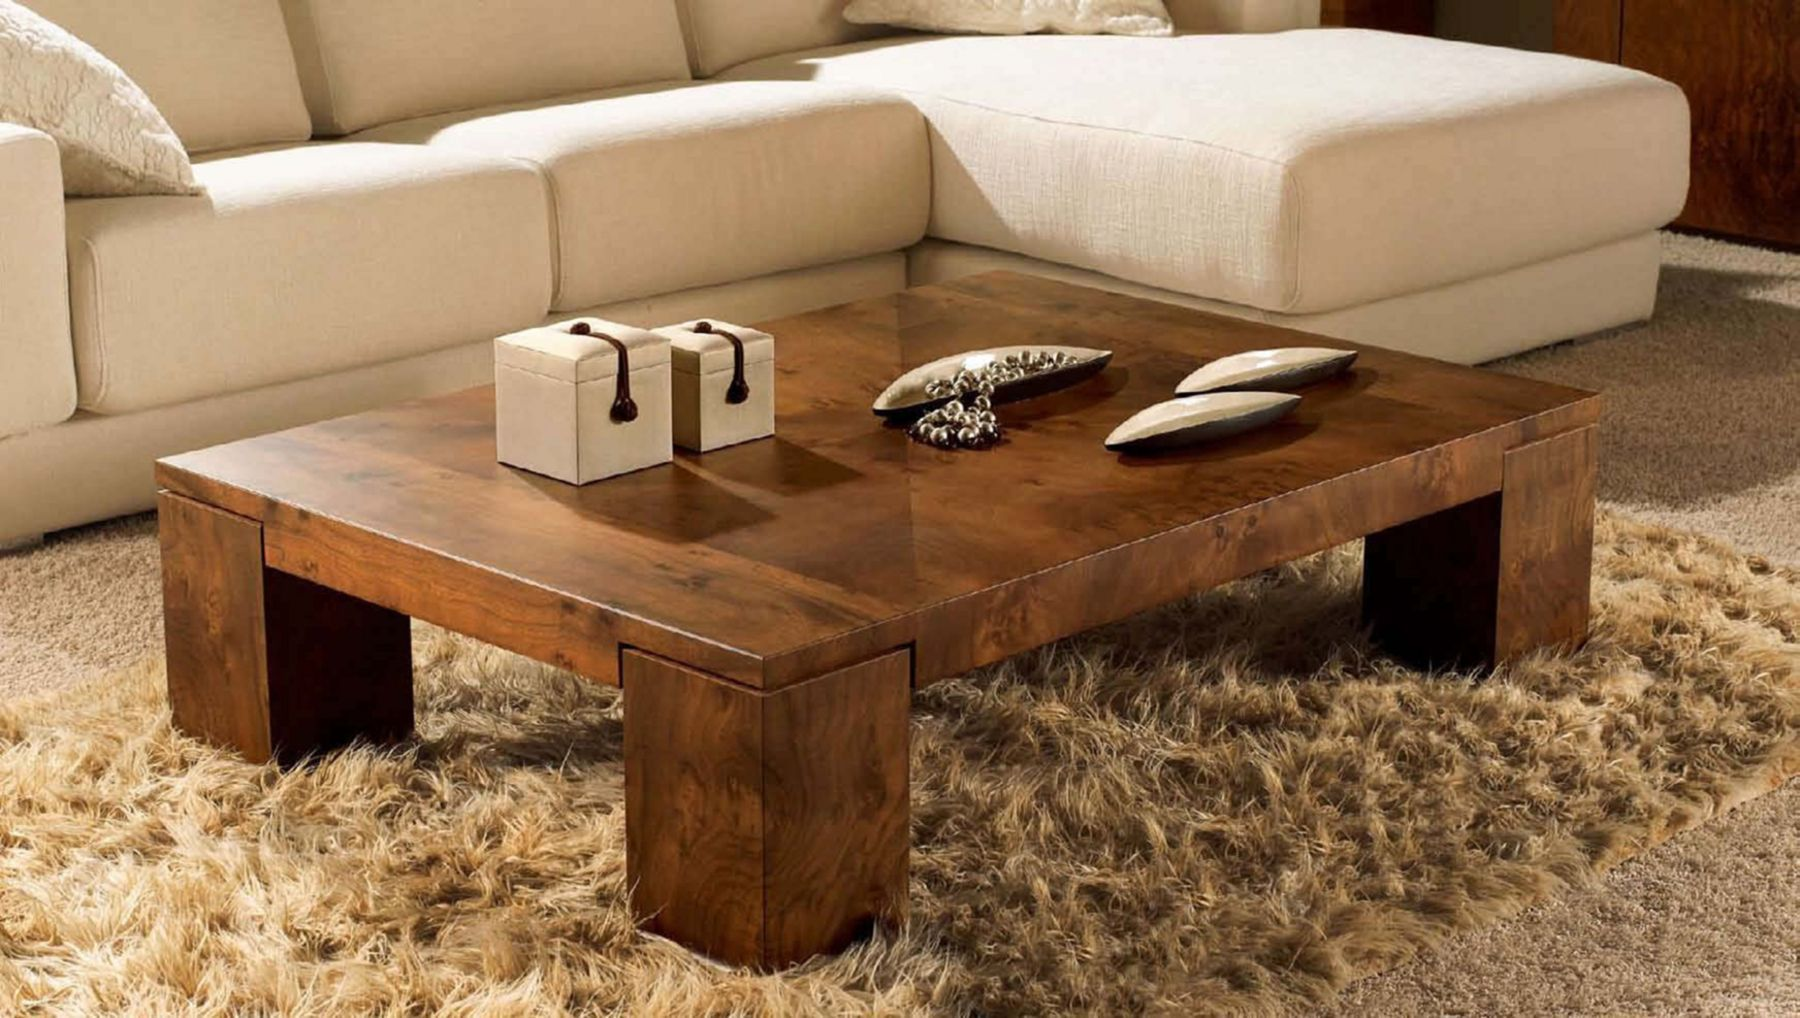 Best 10 Easy Diy Coffee Table Design Ideas To Make Your Living Room Cozy Wood Coffee Table Design Coffee Table Plans Solid Wood Coffee Table [ 1018 x 1800 Pixel ]